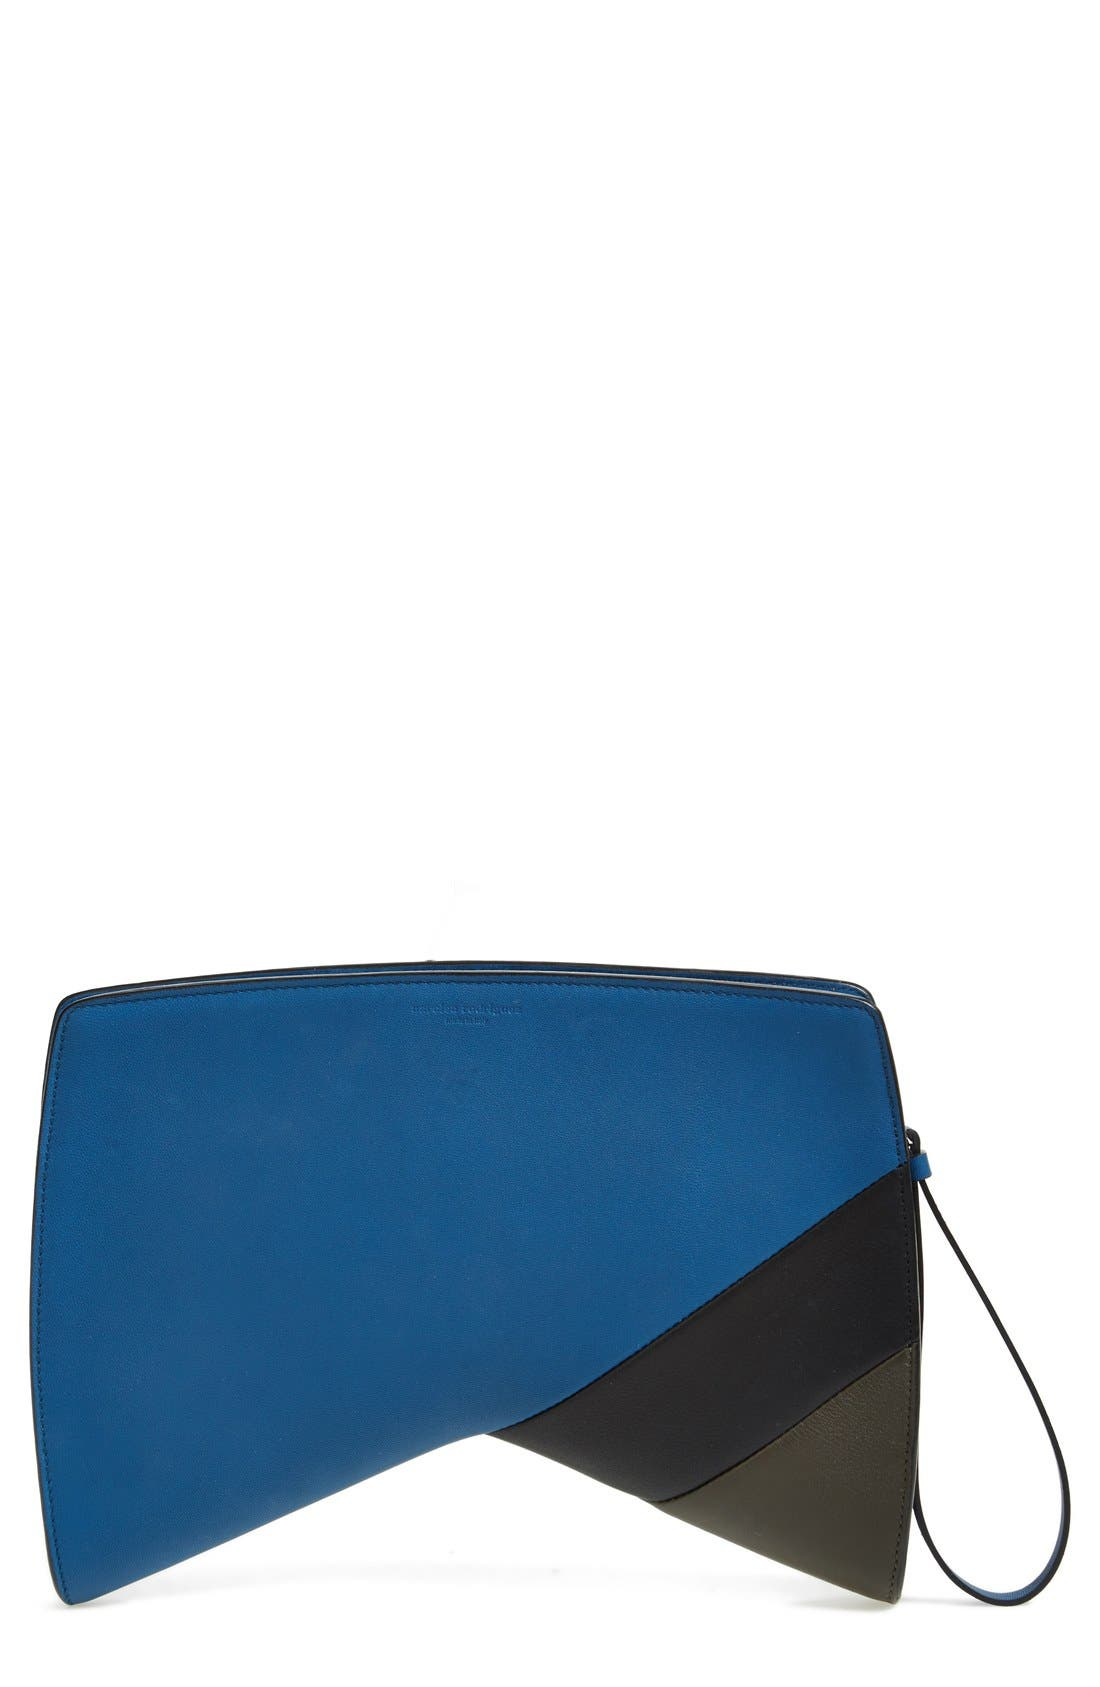 Main Image - Narciso Rodriguez 'Boomerang' Leather Clutch